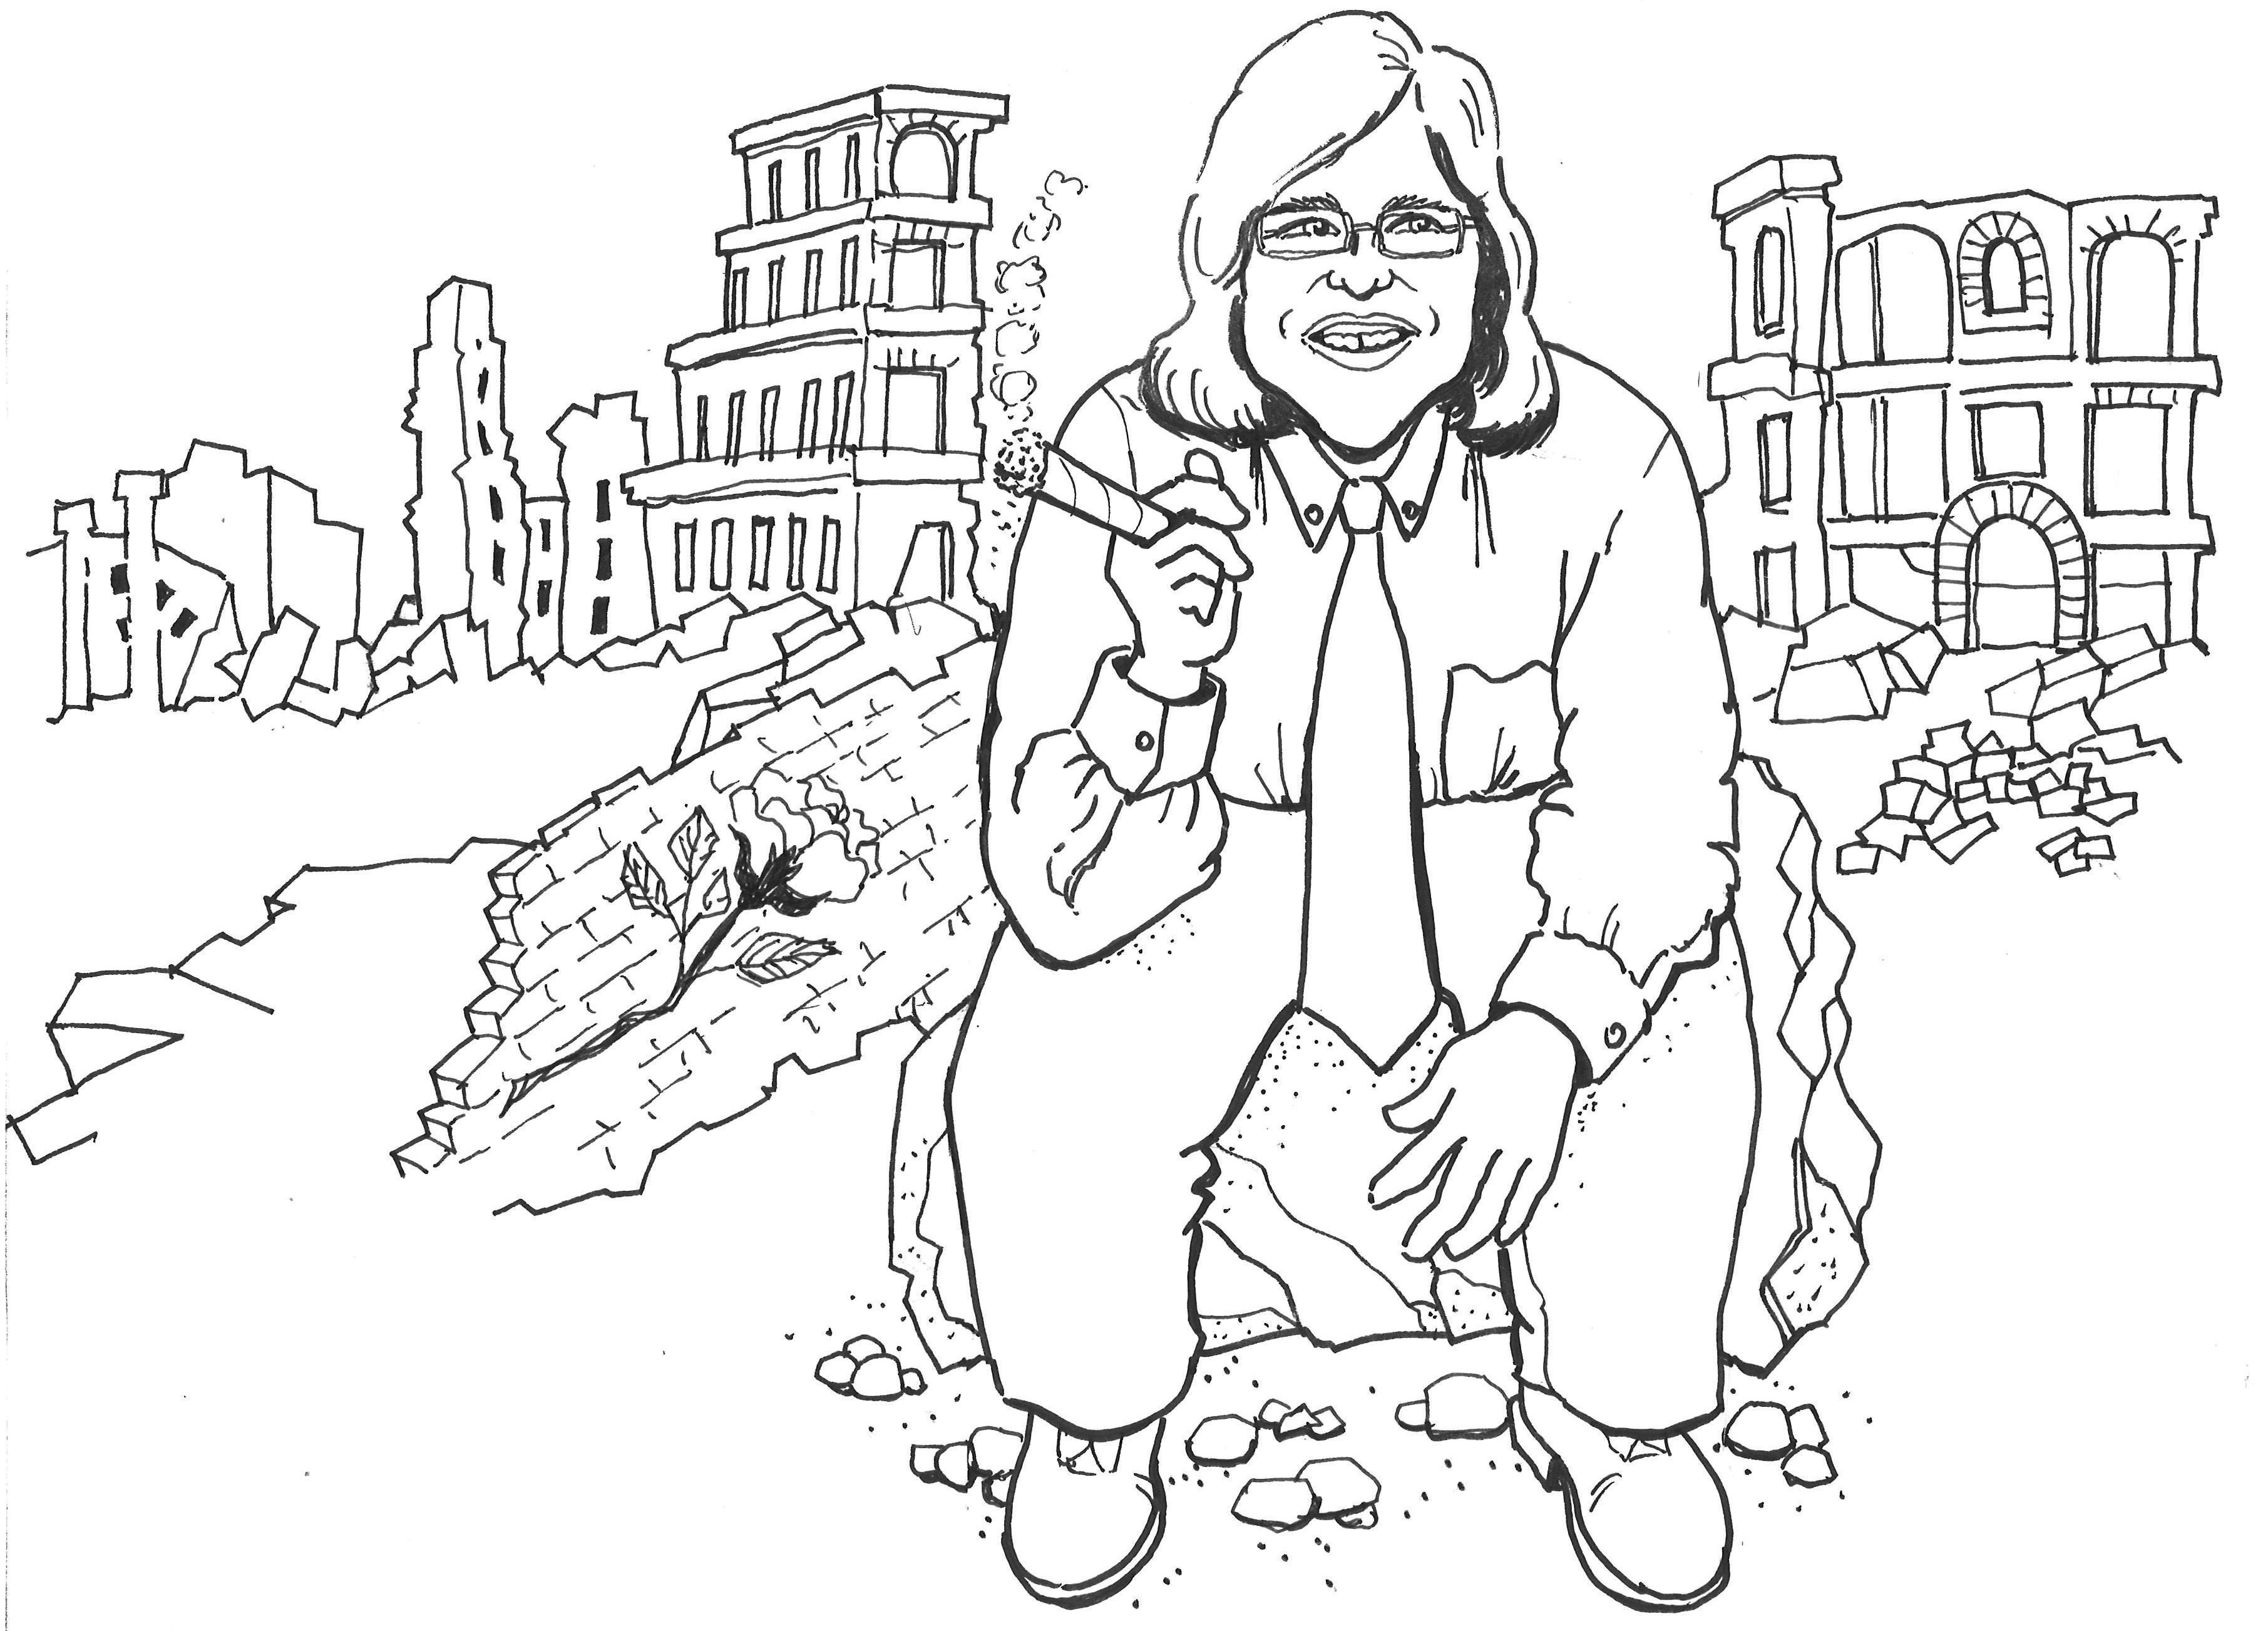 caricature of me sitting on a pile of rubble, smoking a cigar